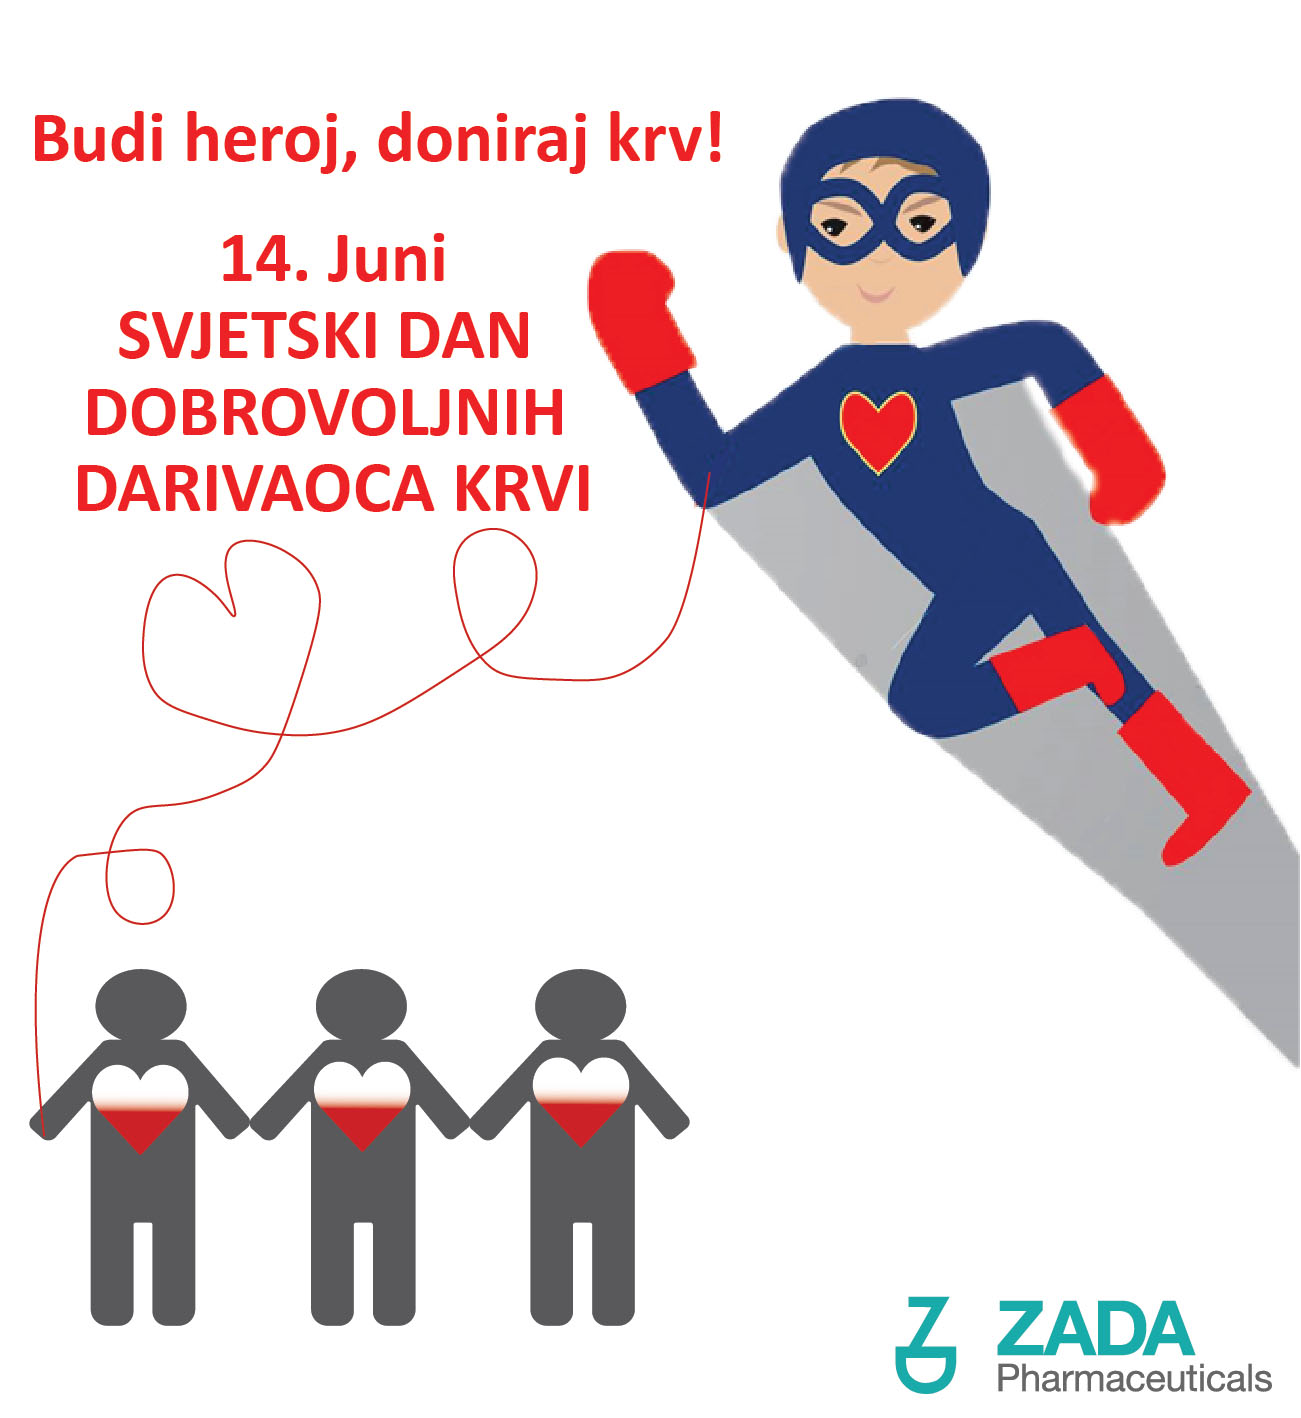 World Blood Donor Day 14.06.